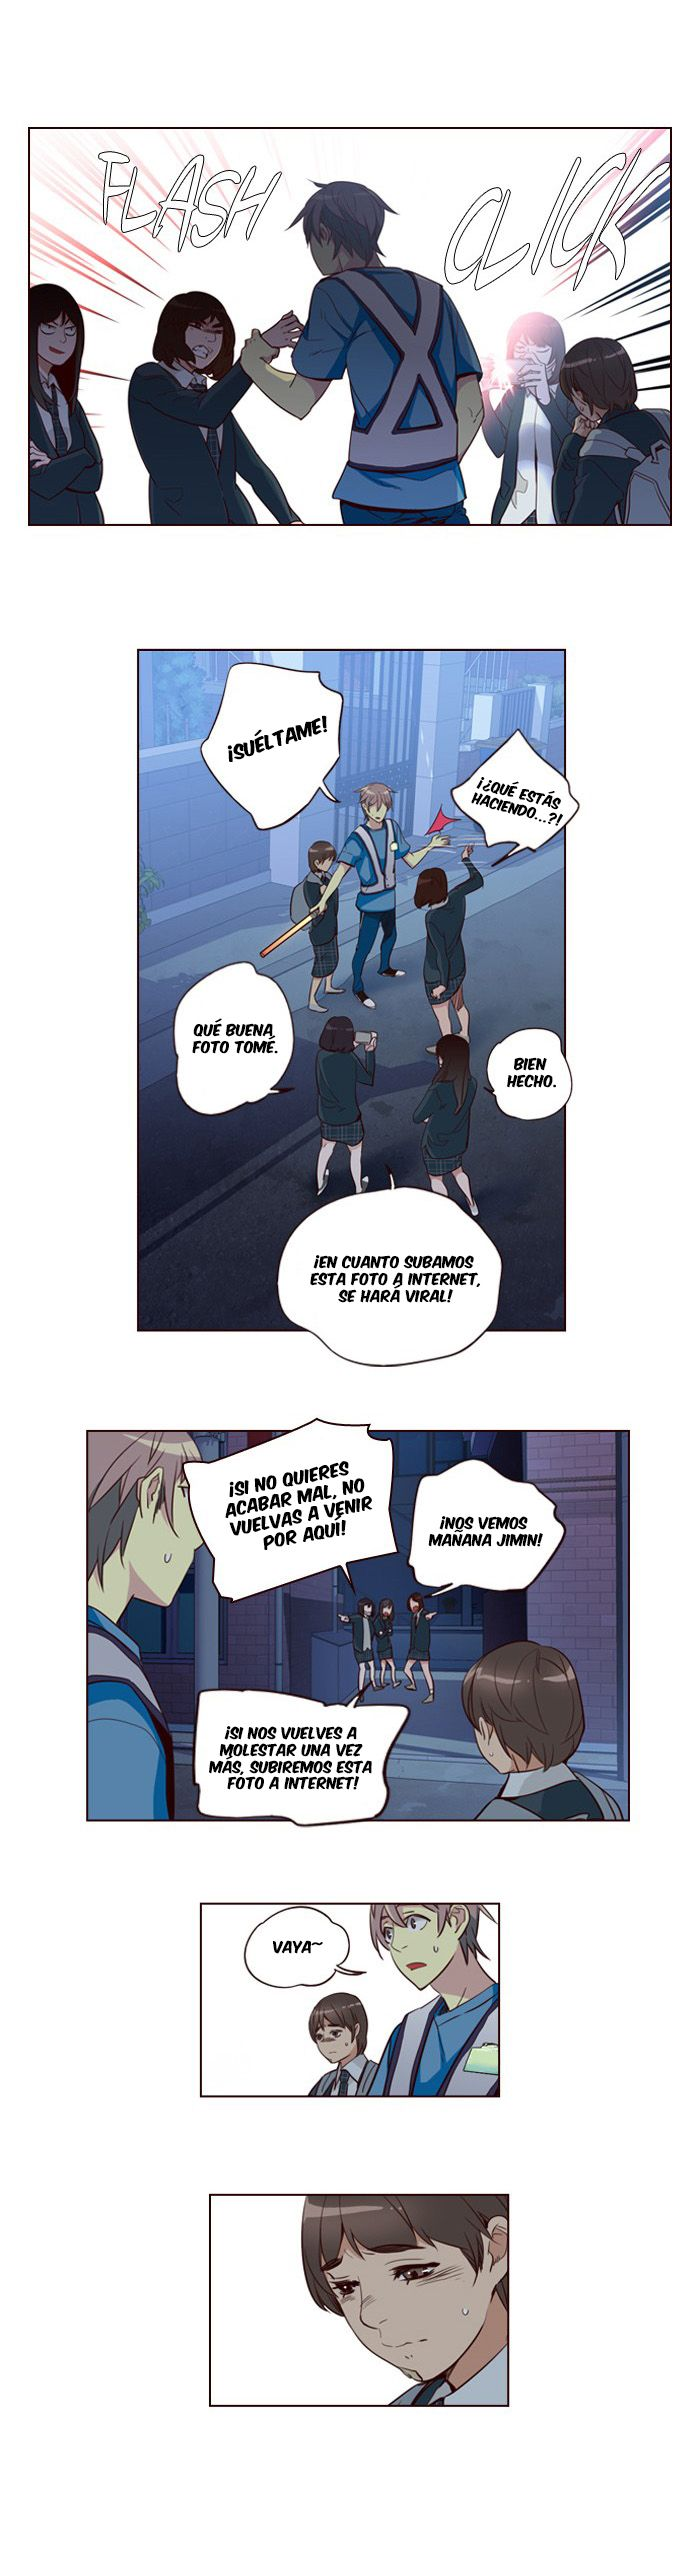 http://c5.ninemanga.com/es_manga/32/416/485306/04a15228386e7ddc19637e80a2d0ed85.jpg Page 4